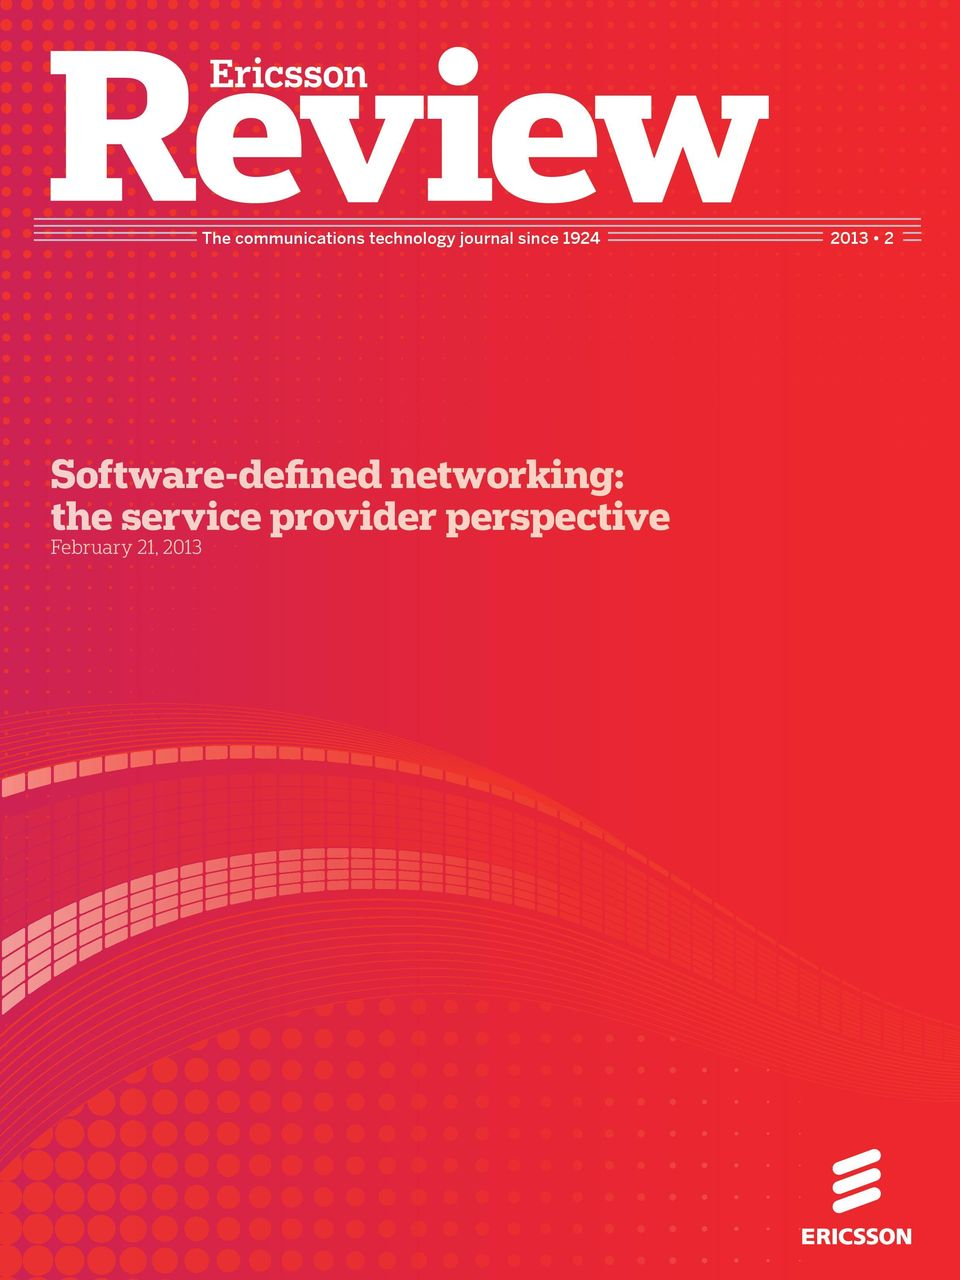 Software-defined networking: the